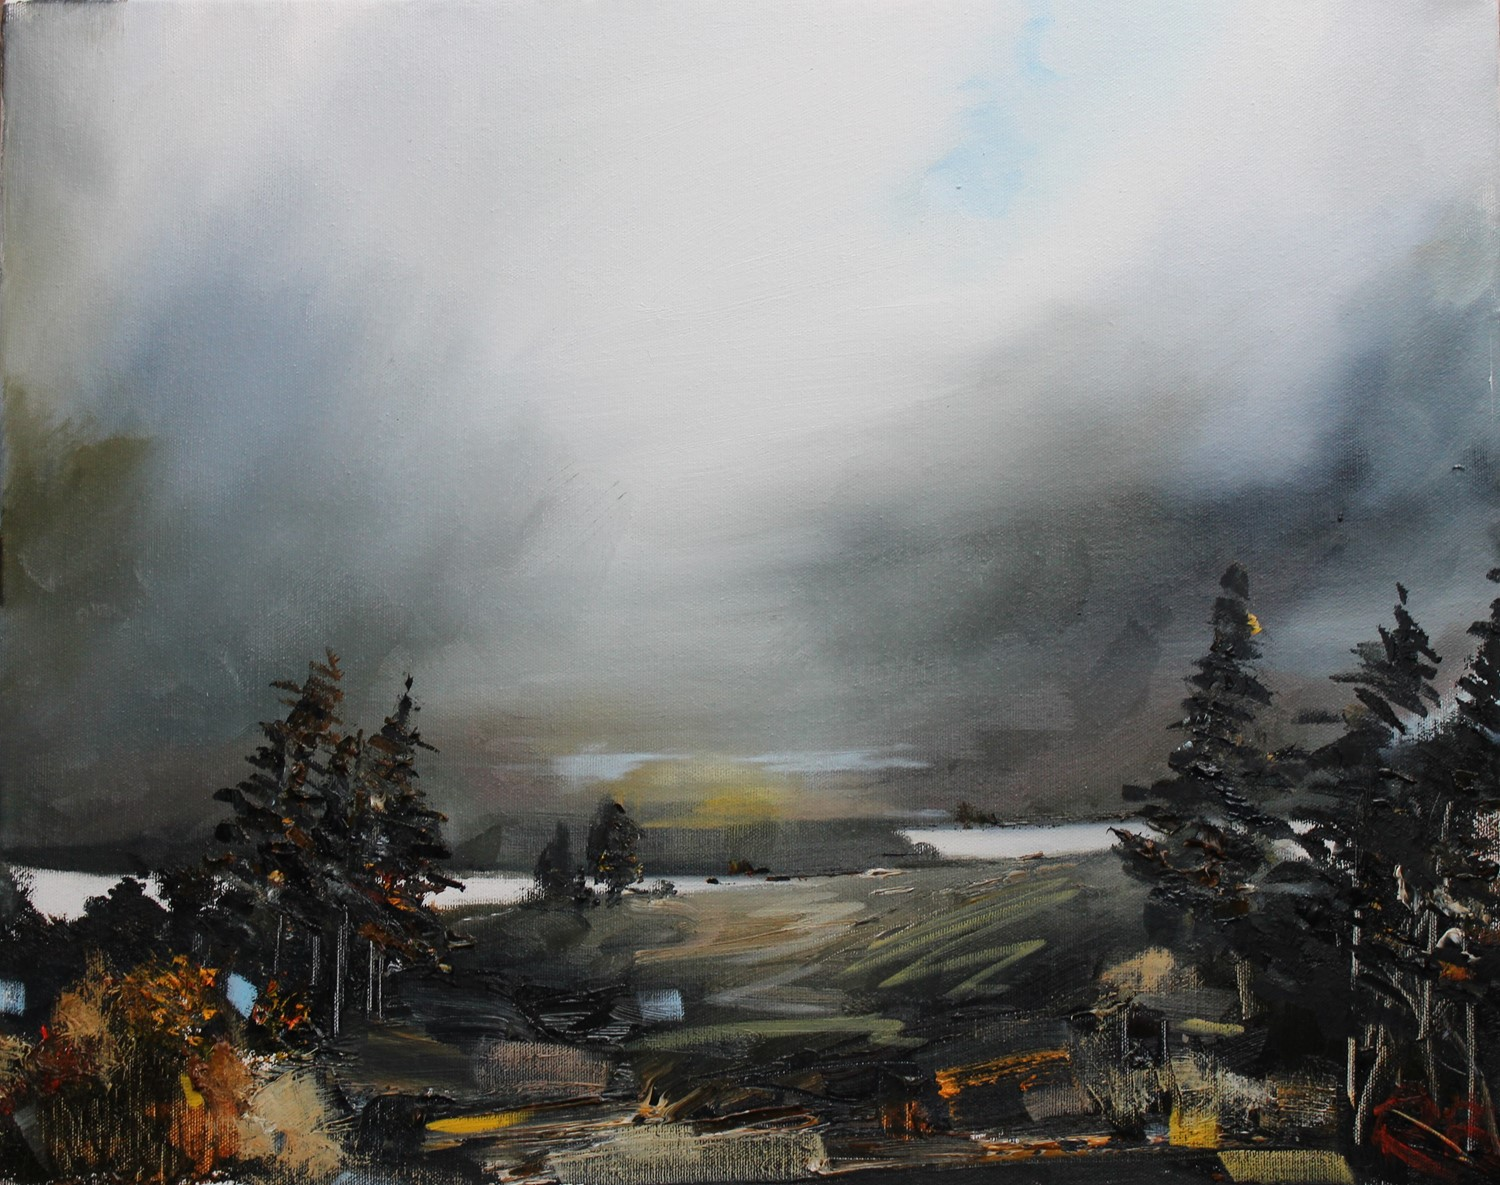 'Highlands amid the Mist ' by artist Rosanne Barr